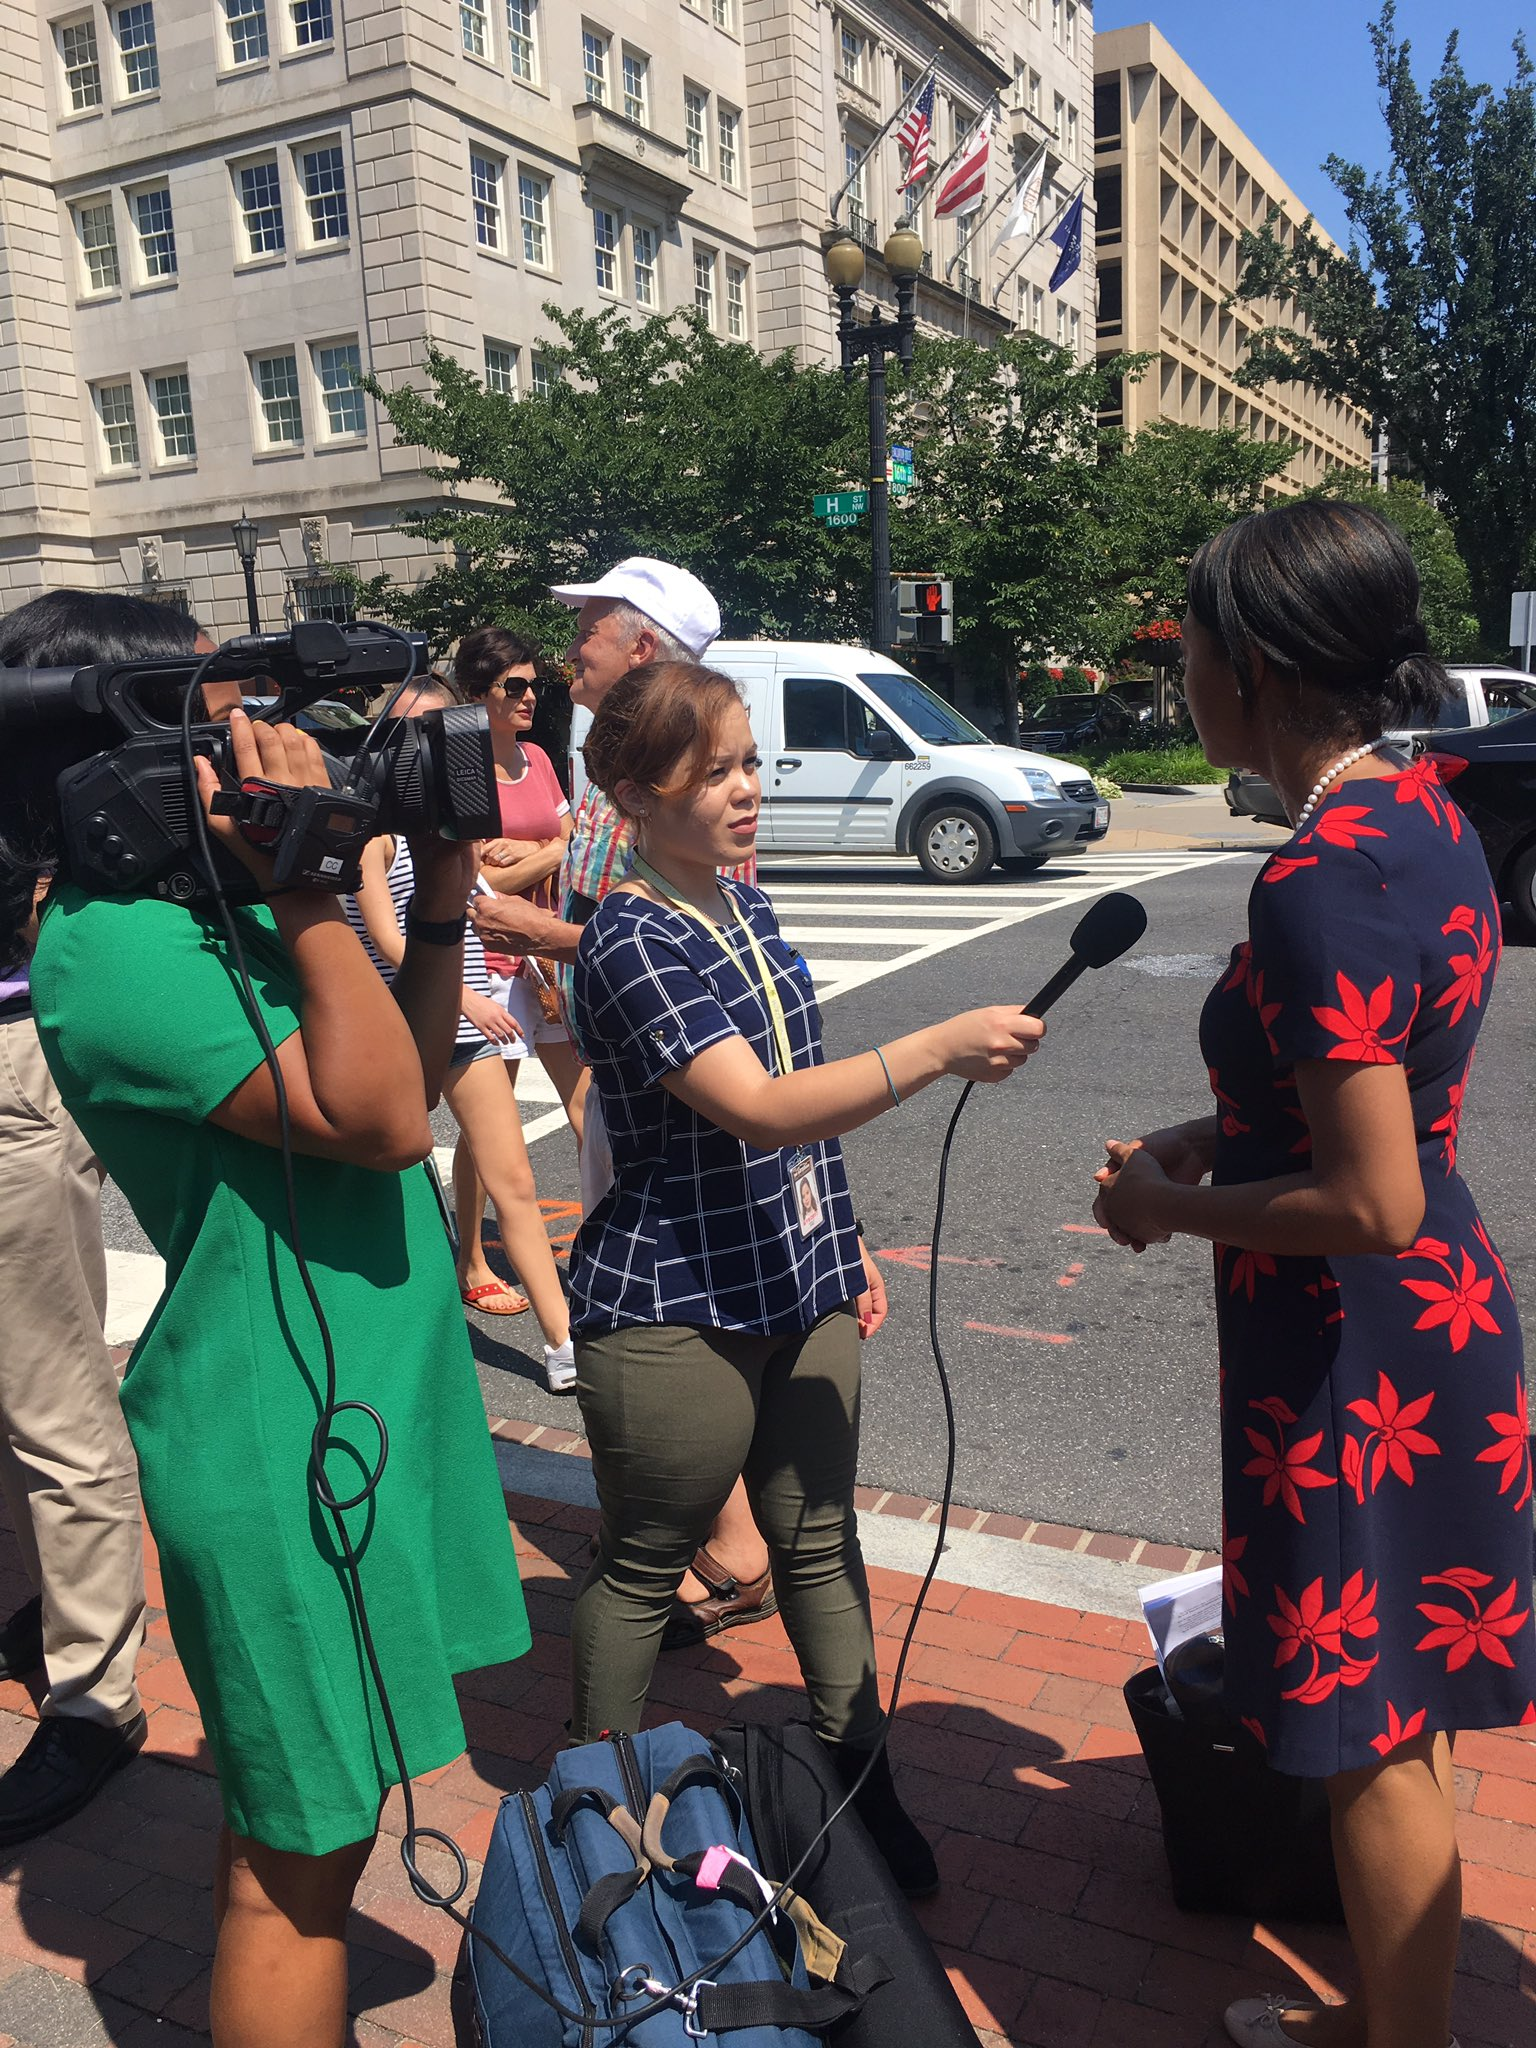 Jennifer Bellamy of @ACLU speaks to media about threat sham commission poses to the accuracy and security of voter records #RespectMyVote https://t.co/5ftBJ8glJG